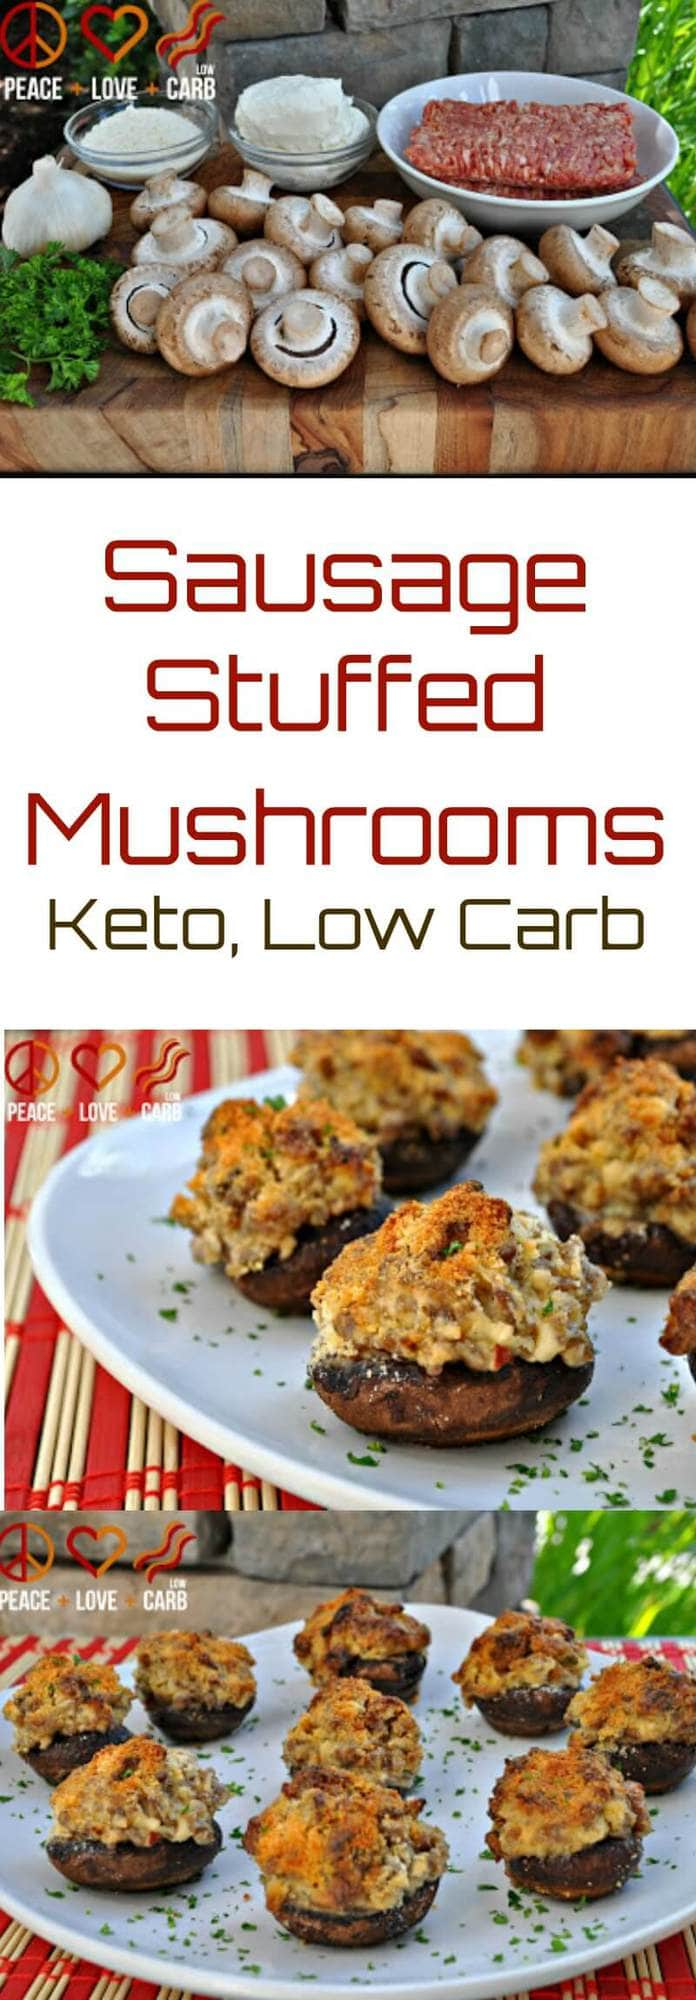 Sausage Stuffed Mushrooms | Peace Love and Low Carb